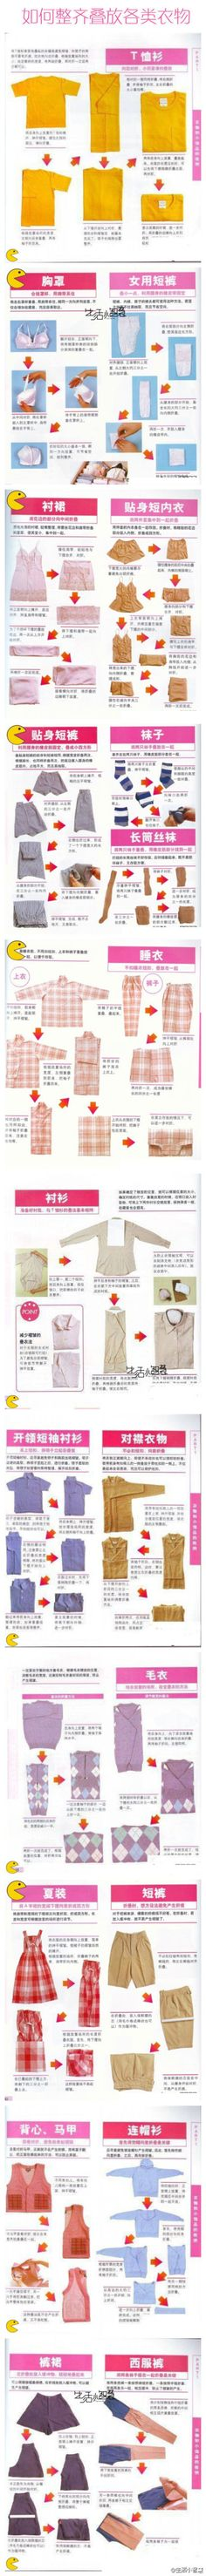 Marie Kondo method and pdf  http://lavendaire.com/wp-content/uploads/2015/06/Tidying-Checklist-v2.pdf